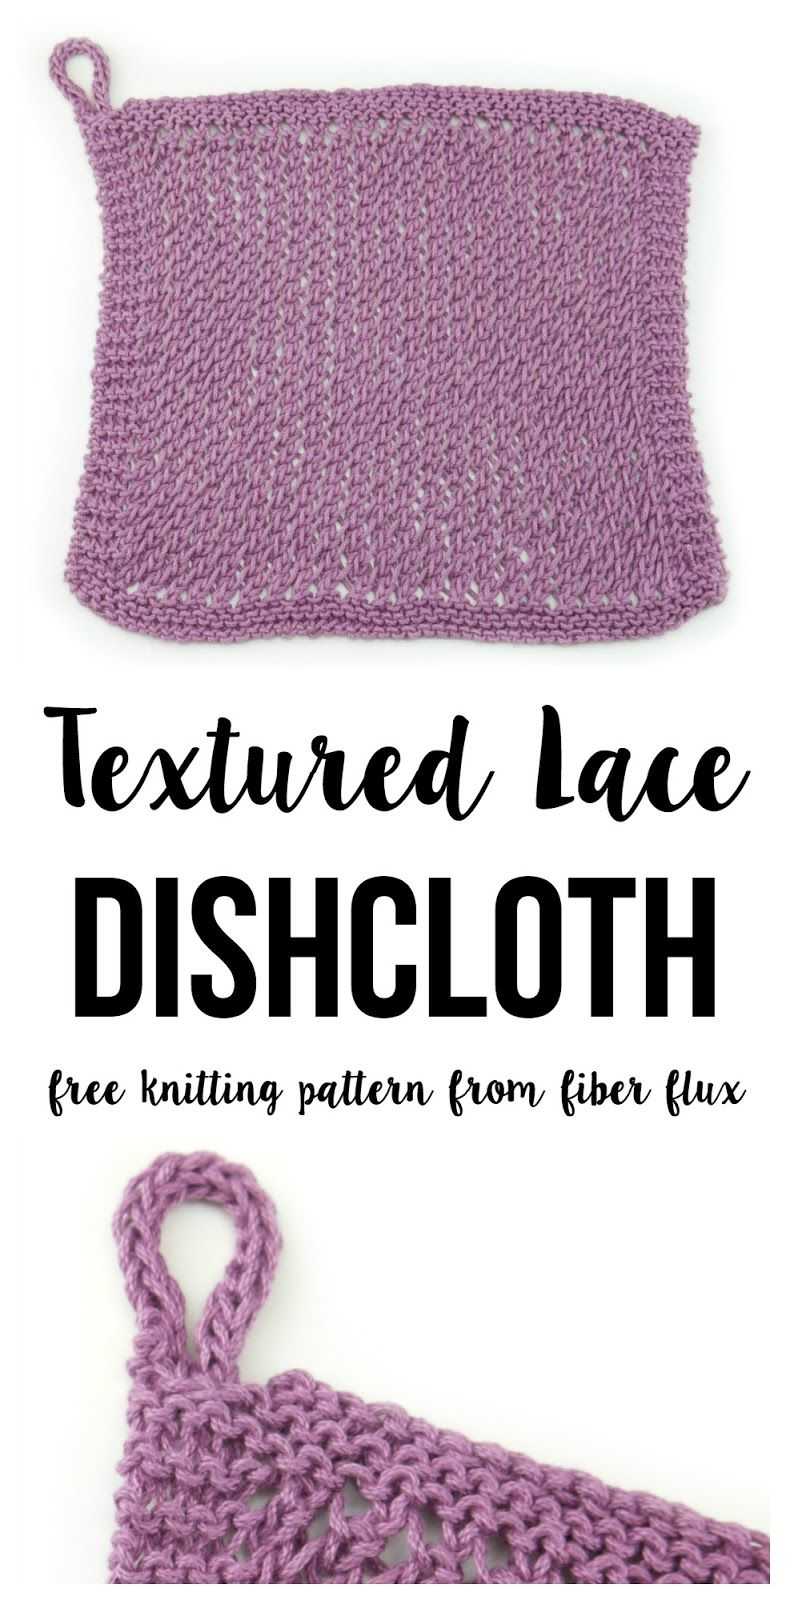 Free Knitting Pattern...Textured Lace Dishcloth! | Easy knitting ...